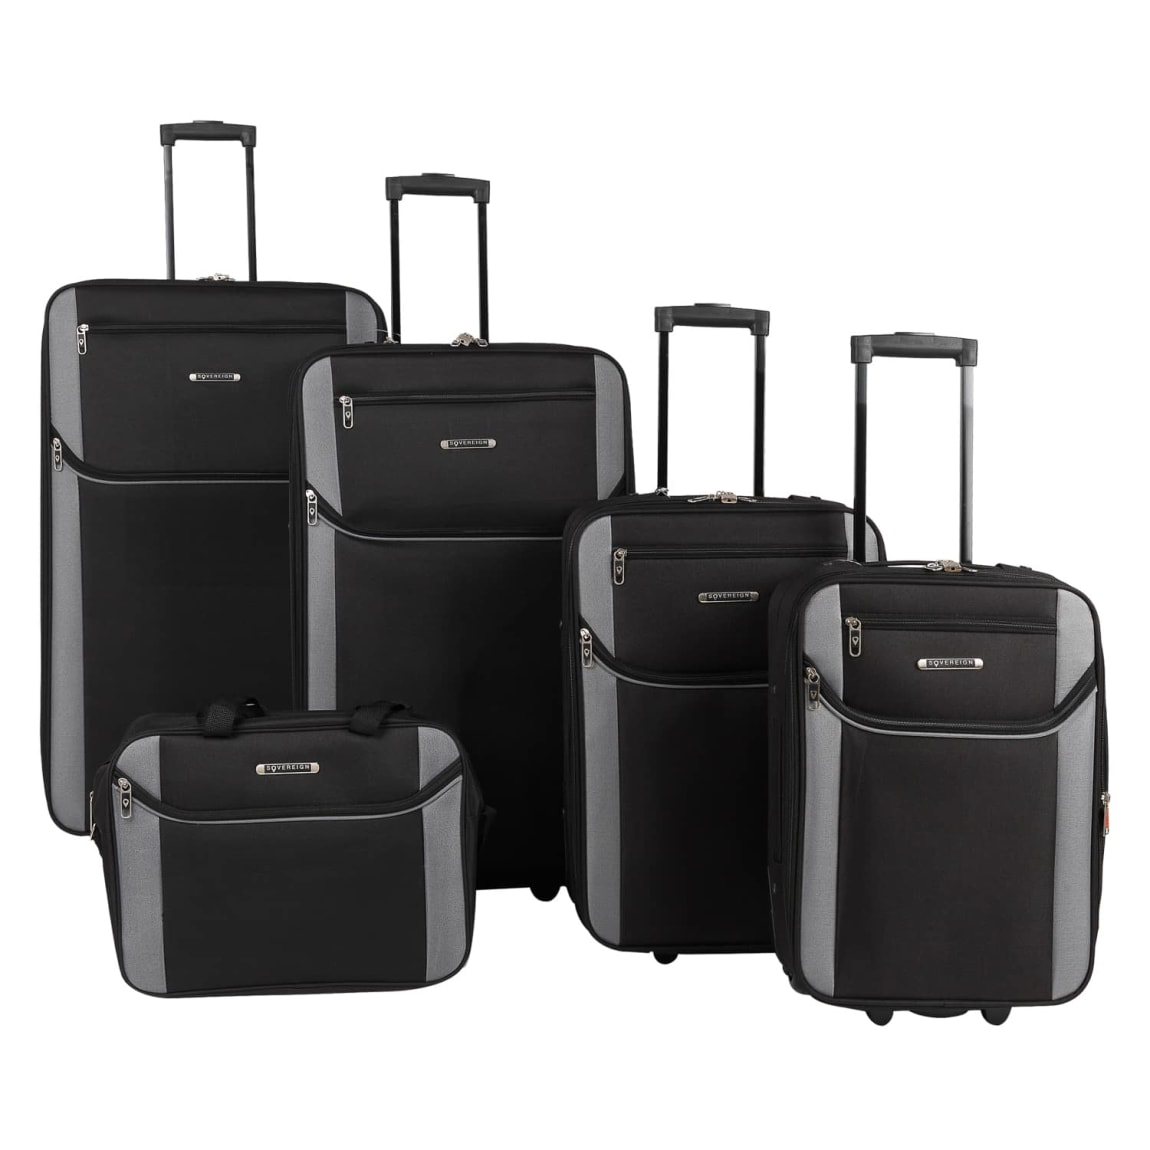 Sovereign Suitcase 49cm - Black